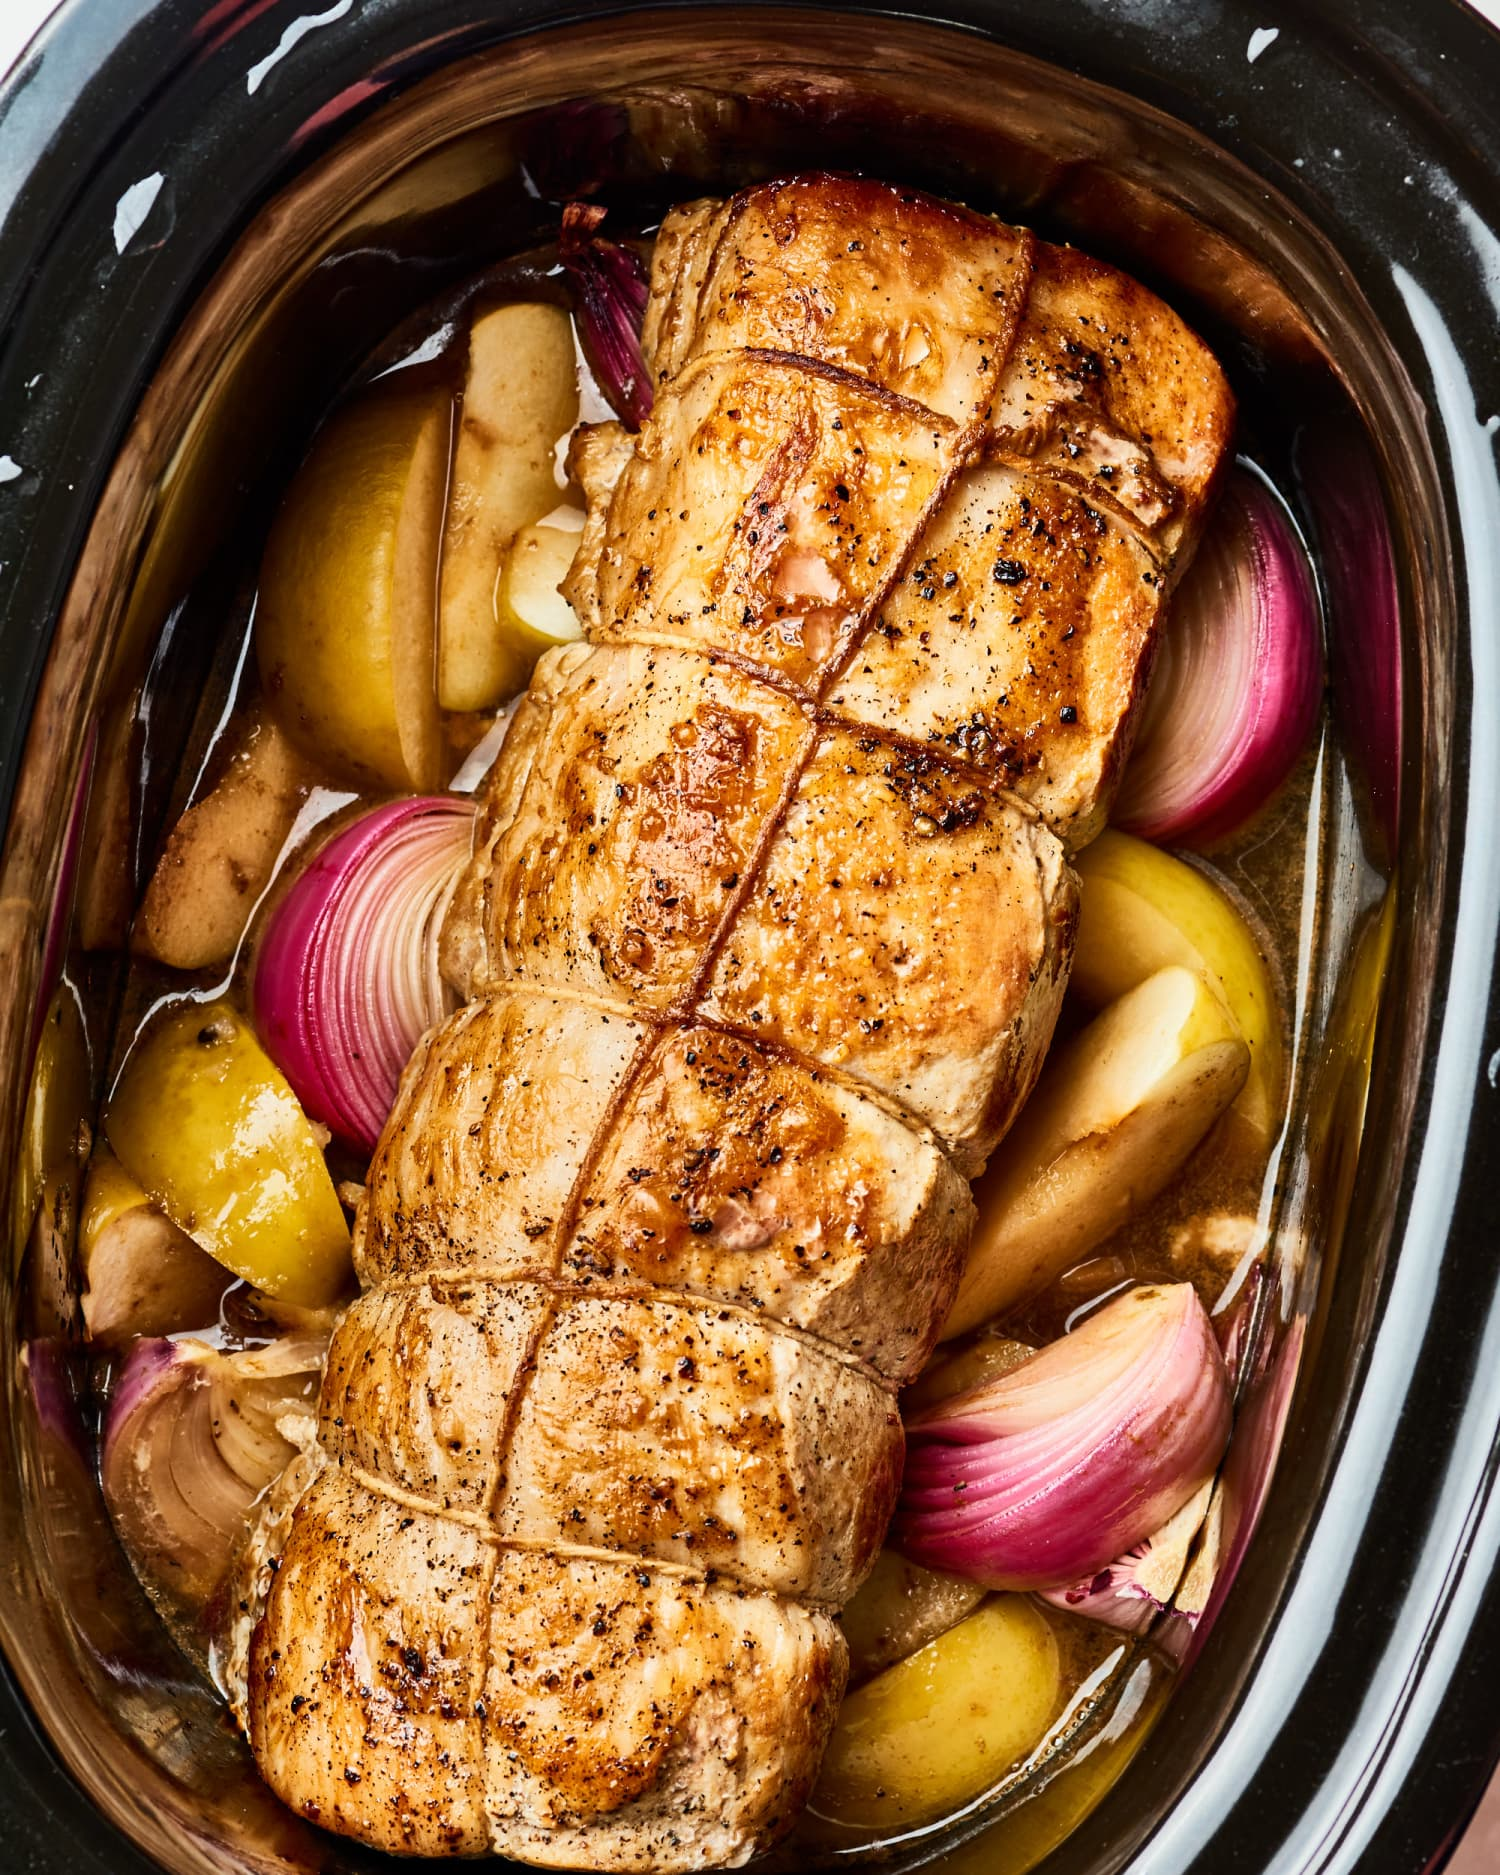 Your Slow Cooker Is the Key to the Best, Easiest Pork Roast